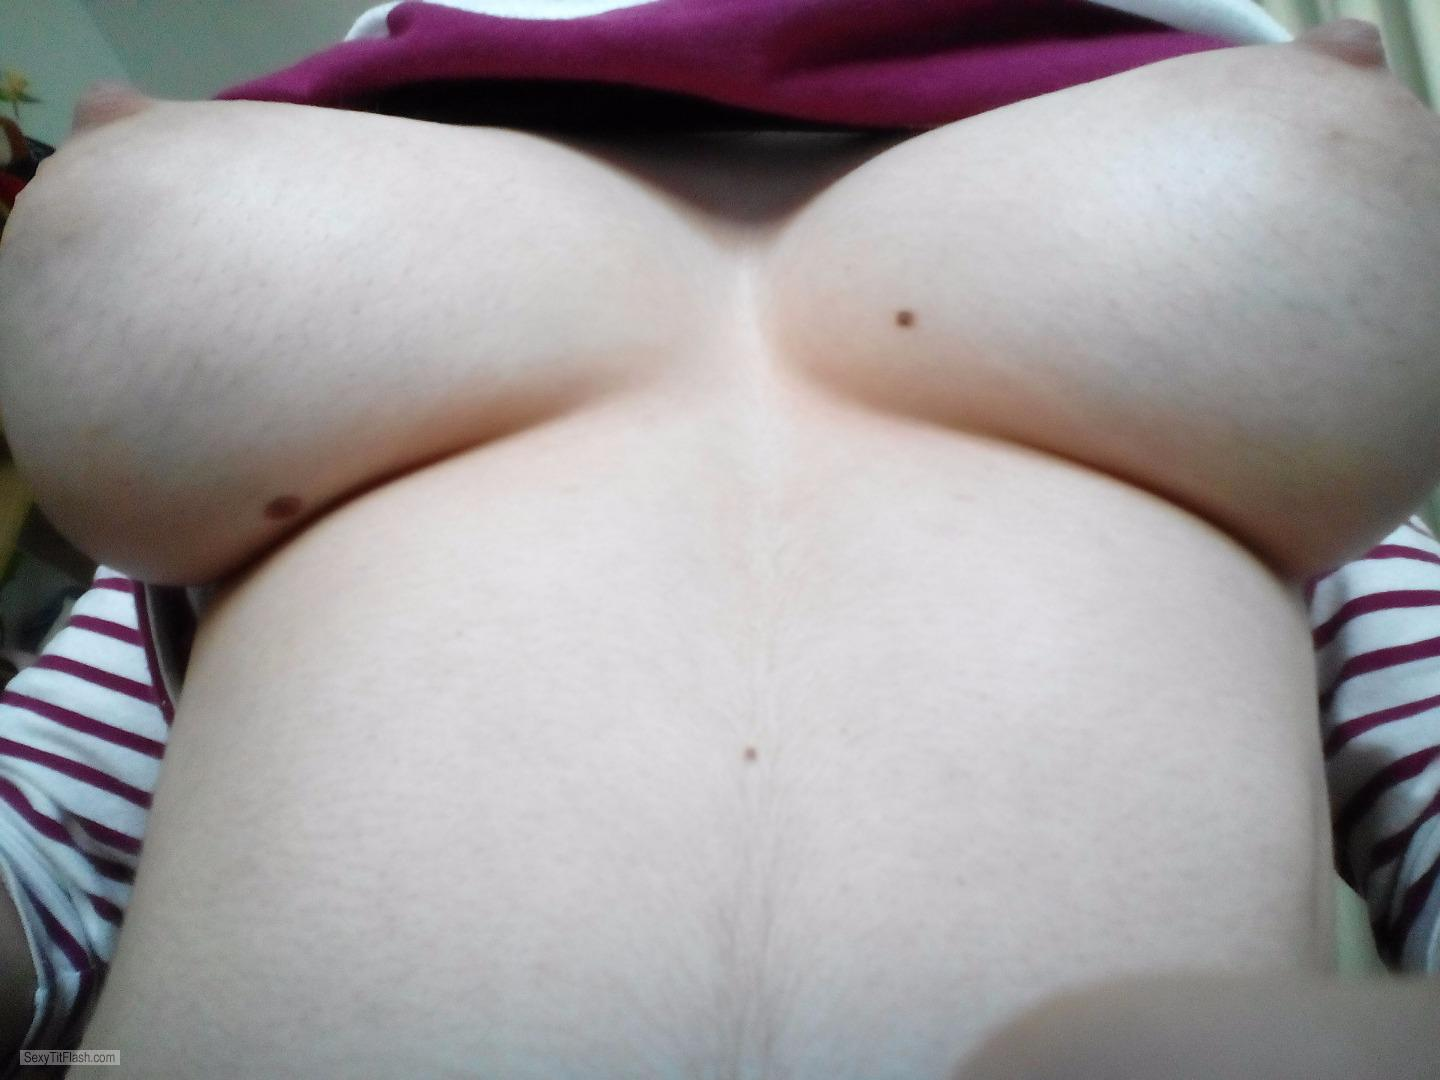 My Big Tits Selfie by Hotsammy